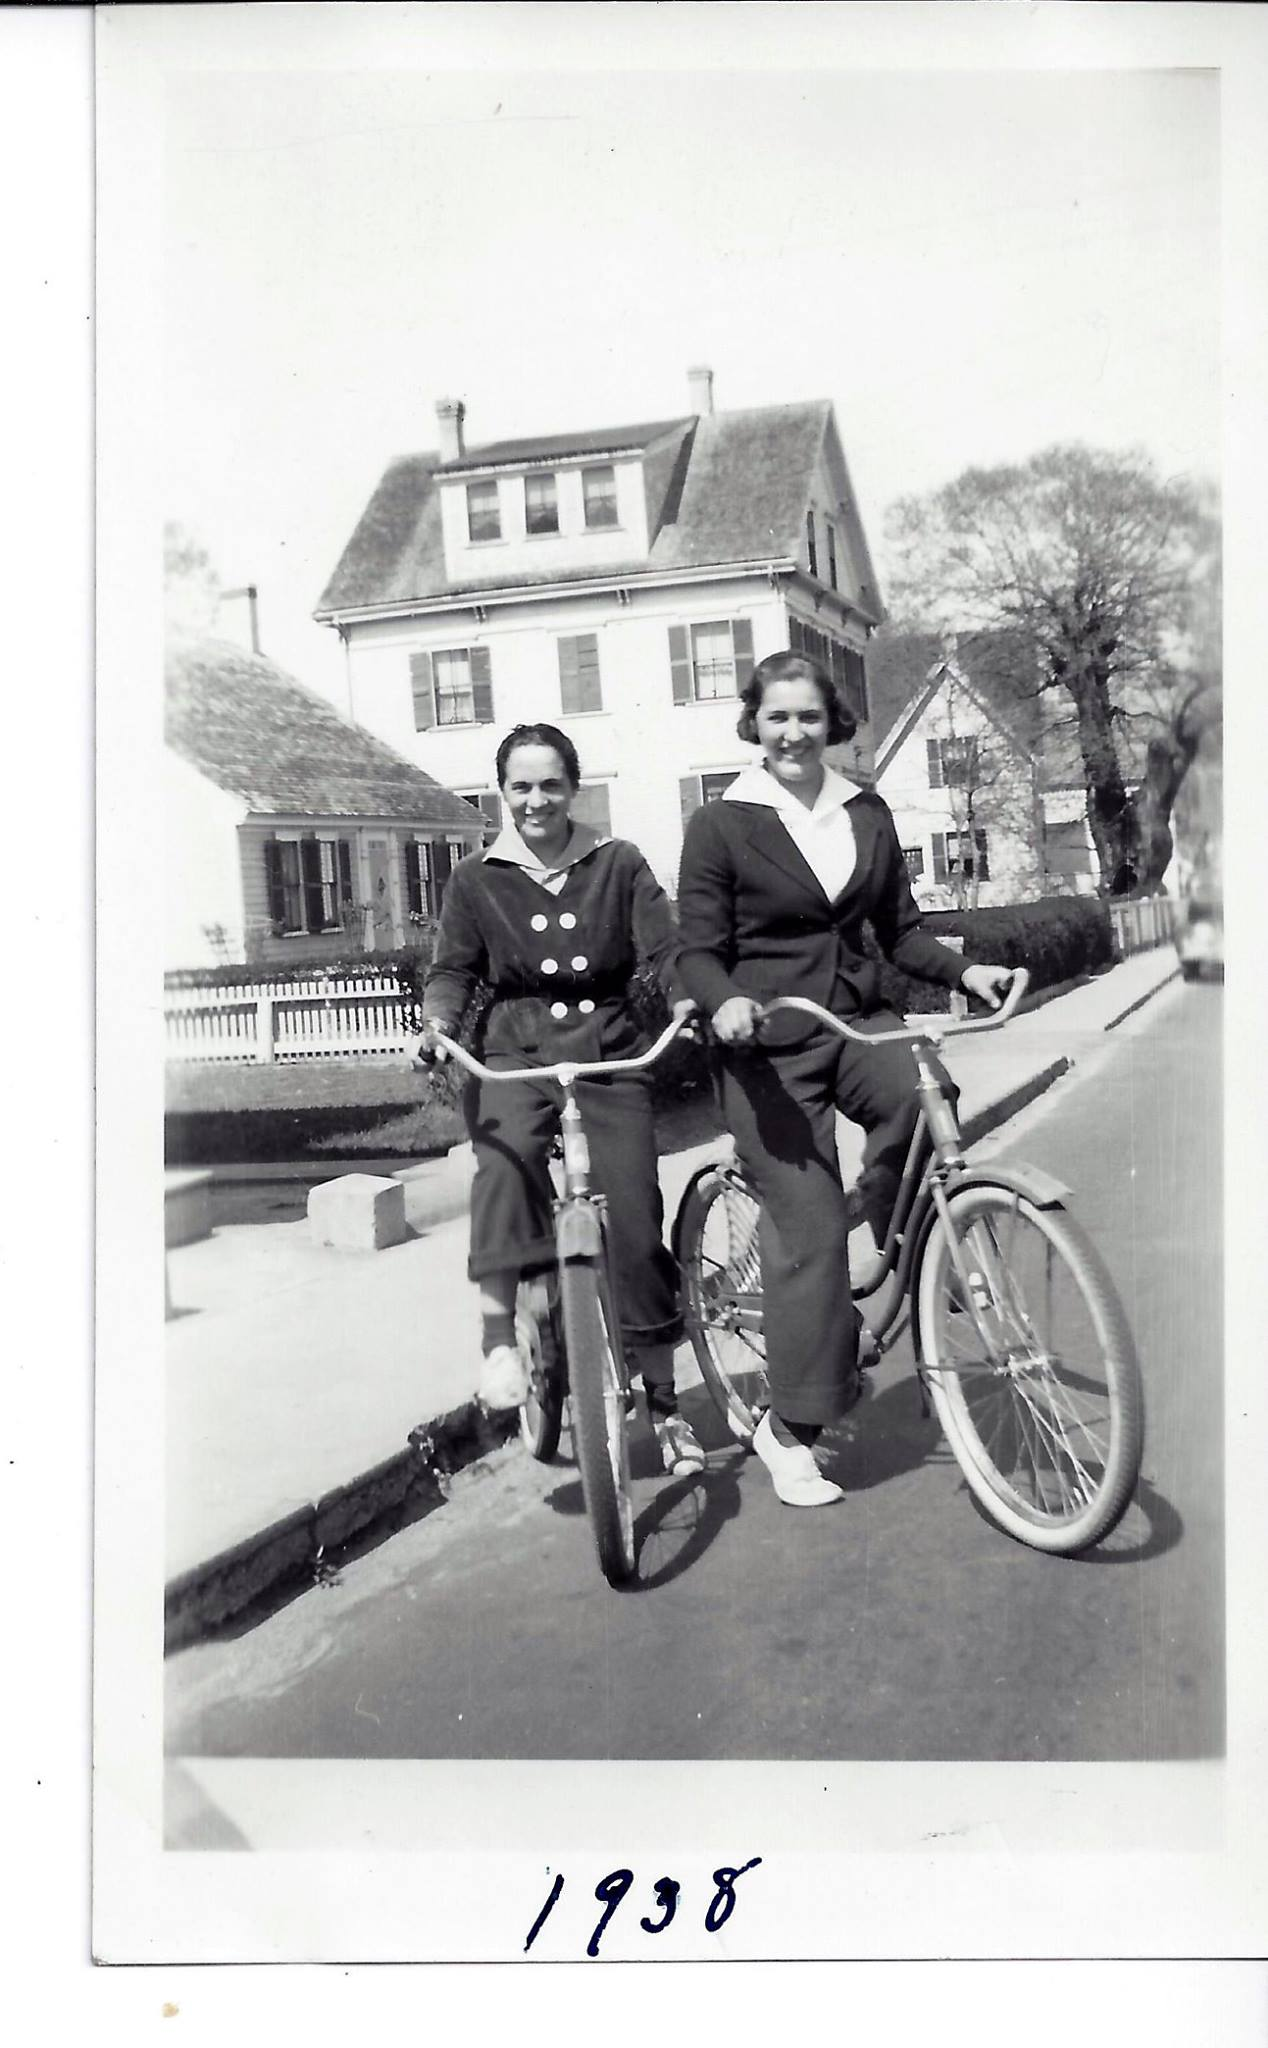 """""""My mother, Marguerite and my aunt Marion Henrique Thomas on their bicycles in the vicinity of Lovetts Court and Commercial Street, Provincetown 1938"""" - Salvador Vasques"""